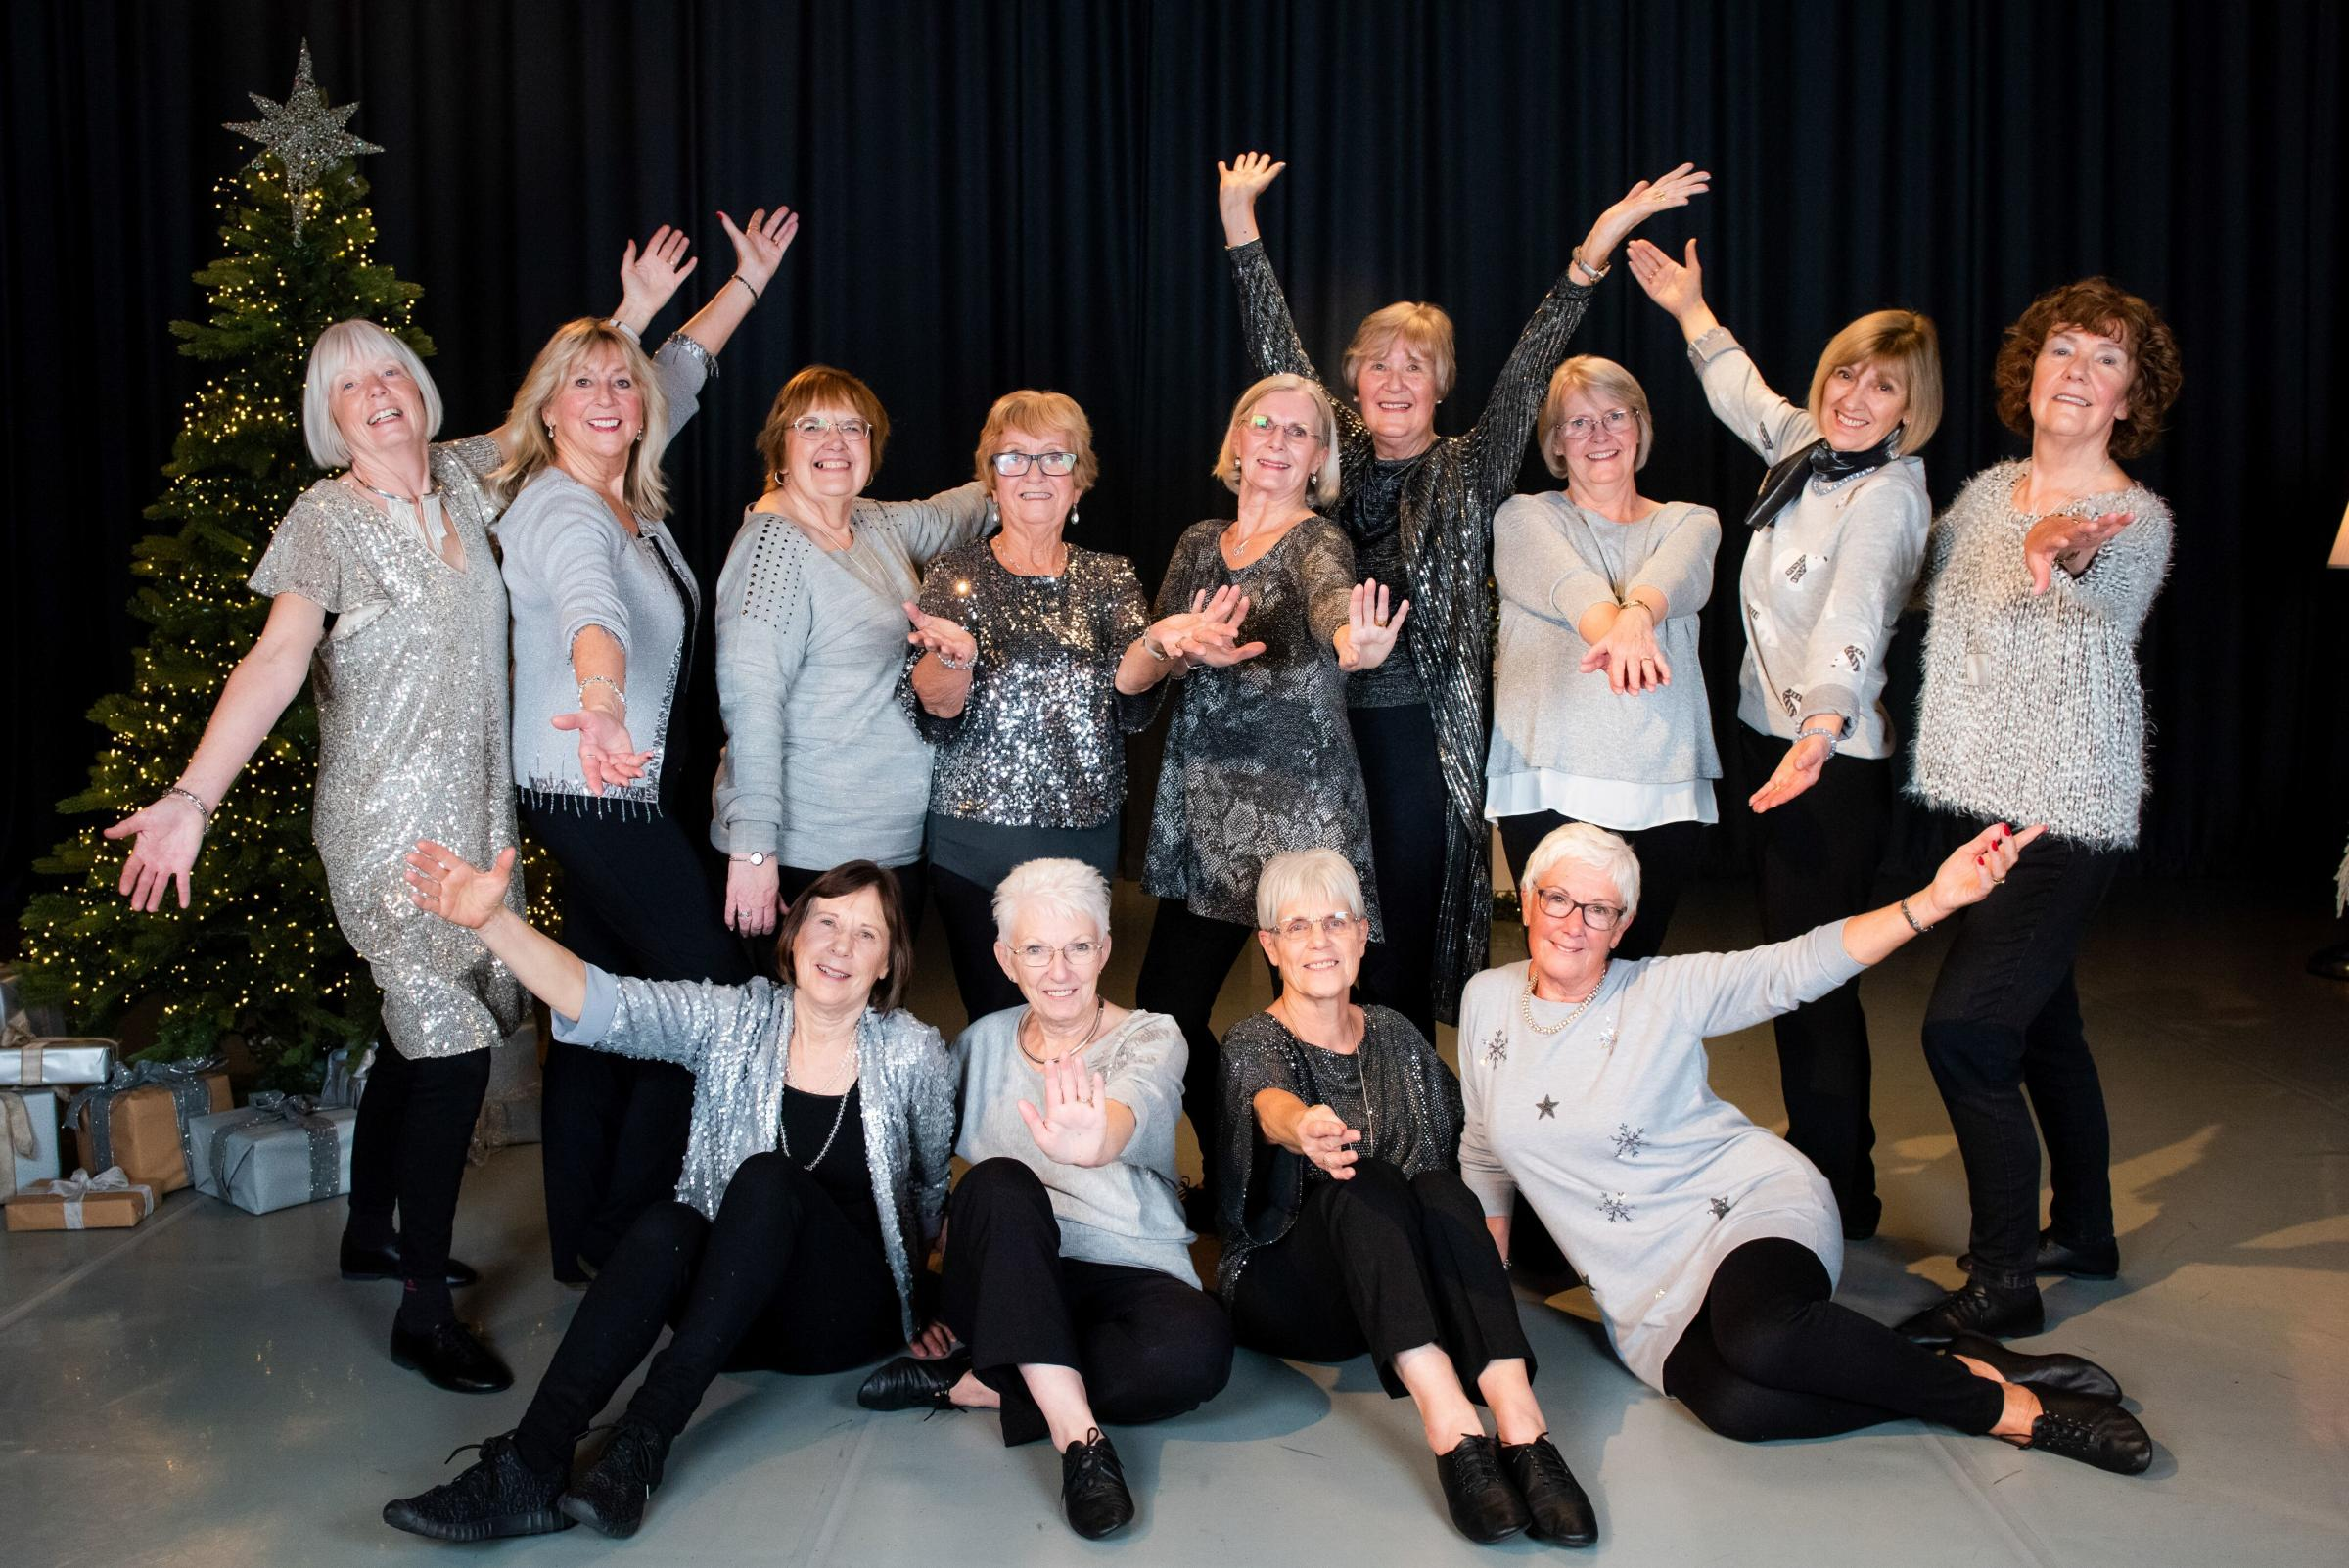 Newport dance group to star on S4C